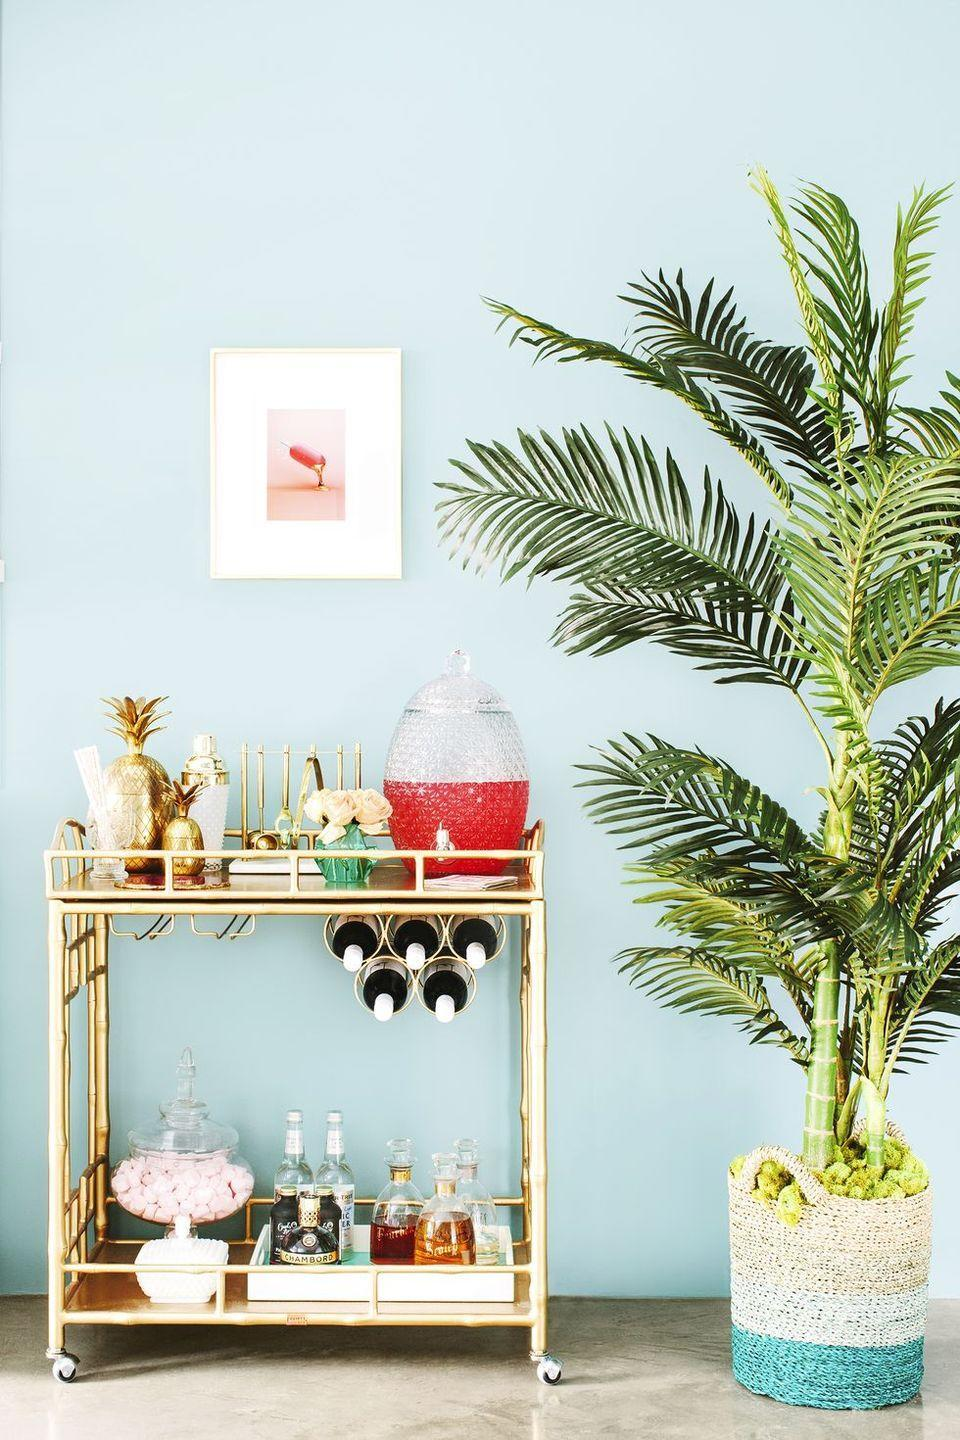 "<p>One of the best ways to boost your mood and add personality to your space is with greenery. Go for an oversized plant, like a Parlor Palm or Yucca, to make a huge impact. </p><p><strong>RELATED: </strong><a href=""https://www.goodhousekeeping.com/home/gardening/g26477167/best-indoor-trees/"" rel=""nofollow noopener"" target=""_blank"" data-ylk=""slk:10 Best Indoor Trees for a Happier Home"" class=""link rapid-noclick-resp"">10 Best Indoor Trees for a Happier Home</a></p>"